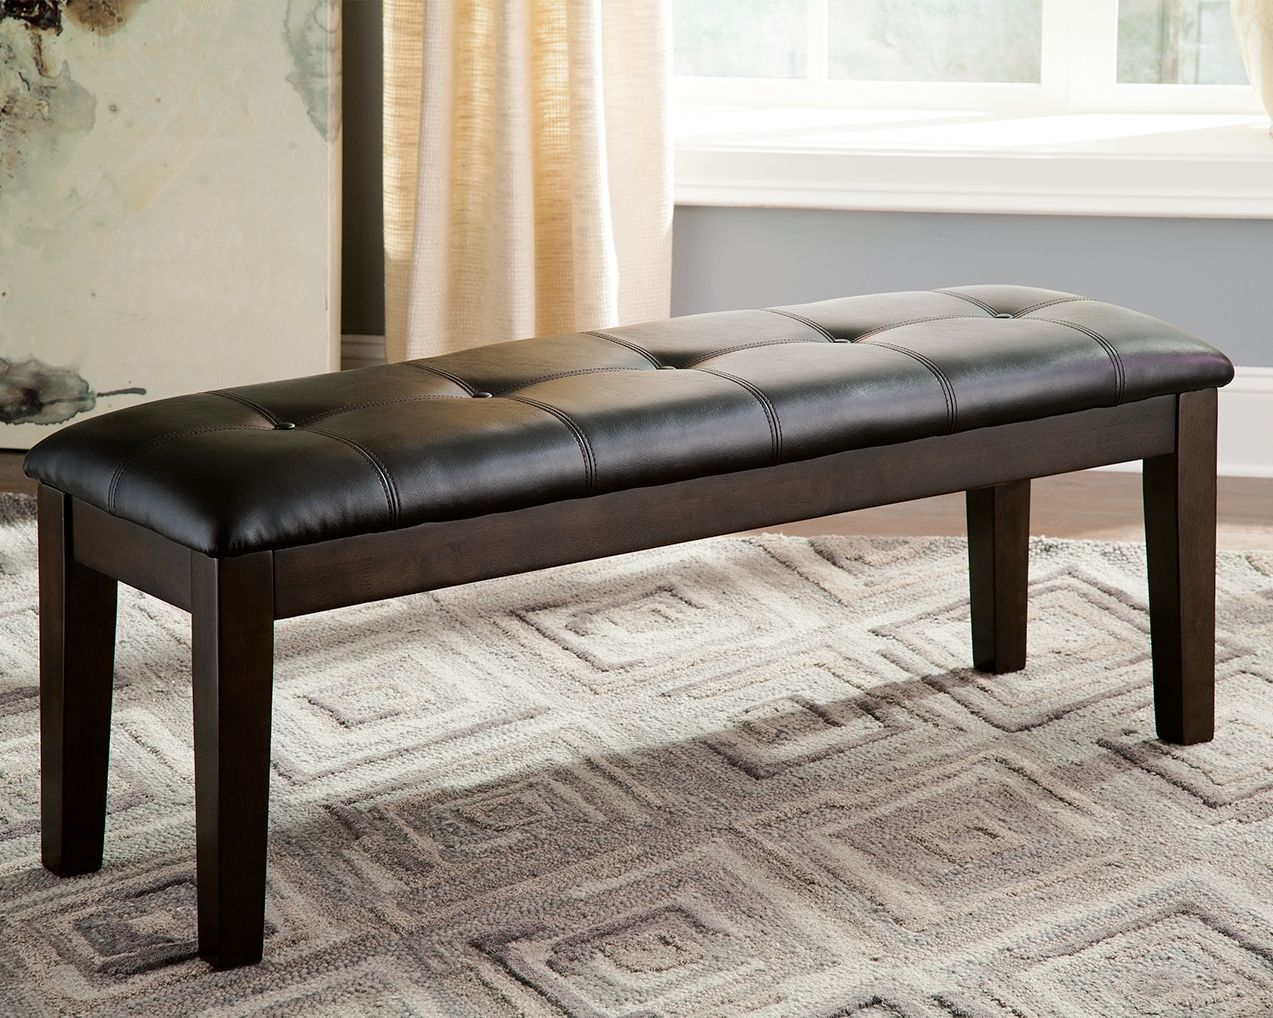 Haddigan Dining Room Bench Dark Brown Leather In 2020 Dining Room Bench Upholstered Dining Bench Dining Bench